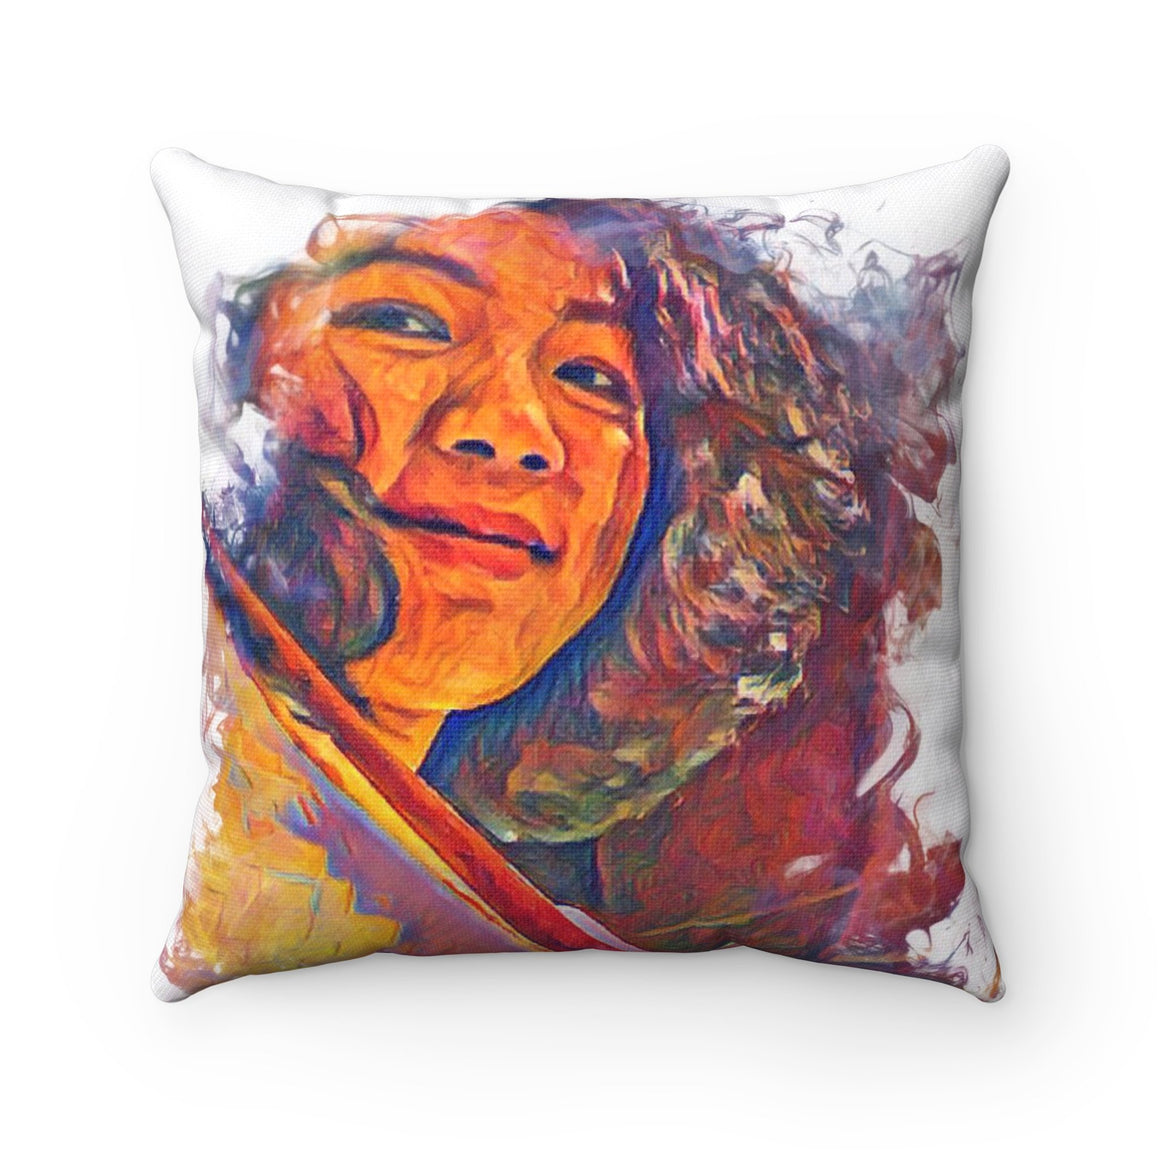 Levi Thang Vintage Face Design T Spun Polyester Square Pillow Case